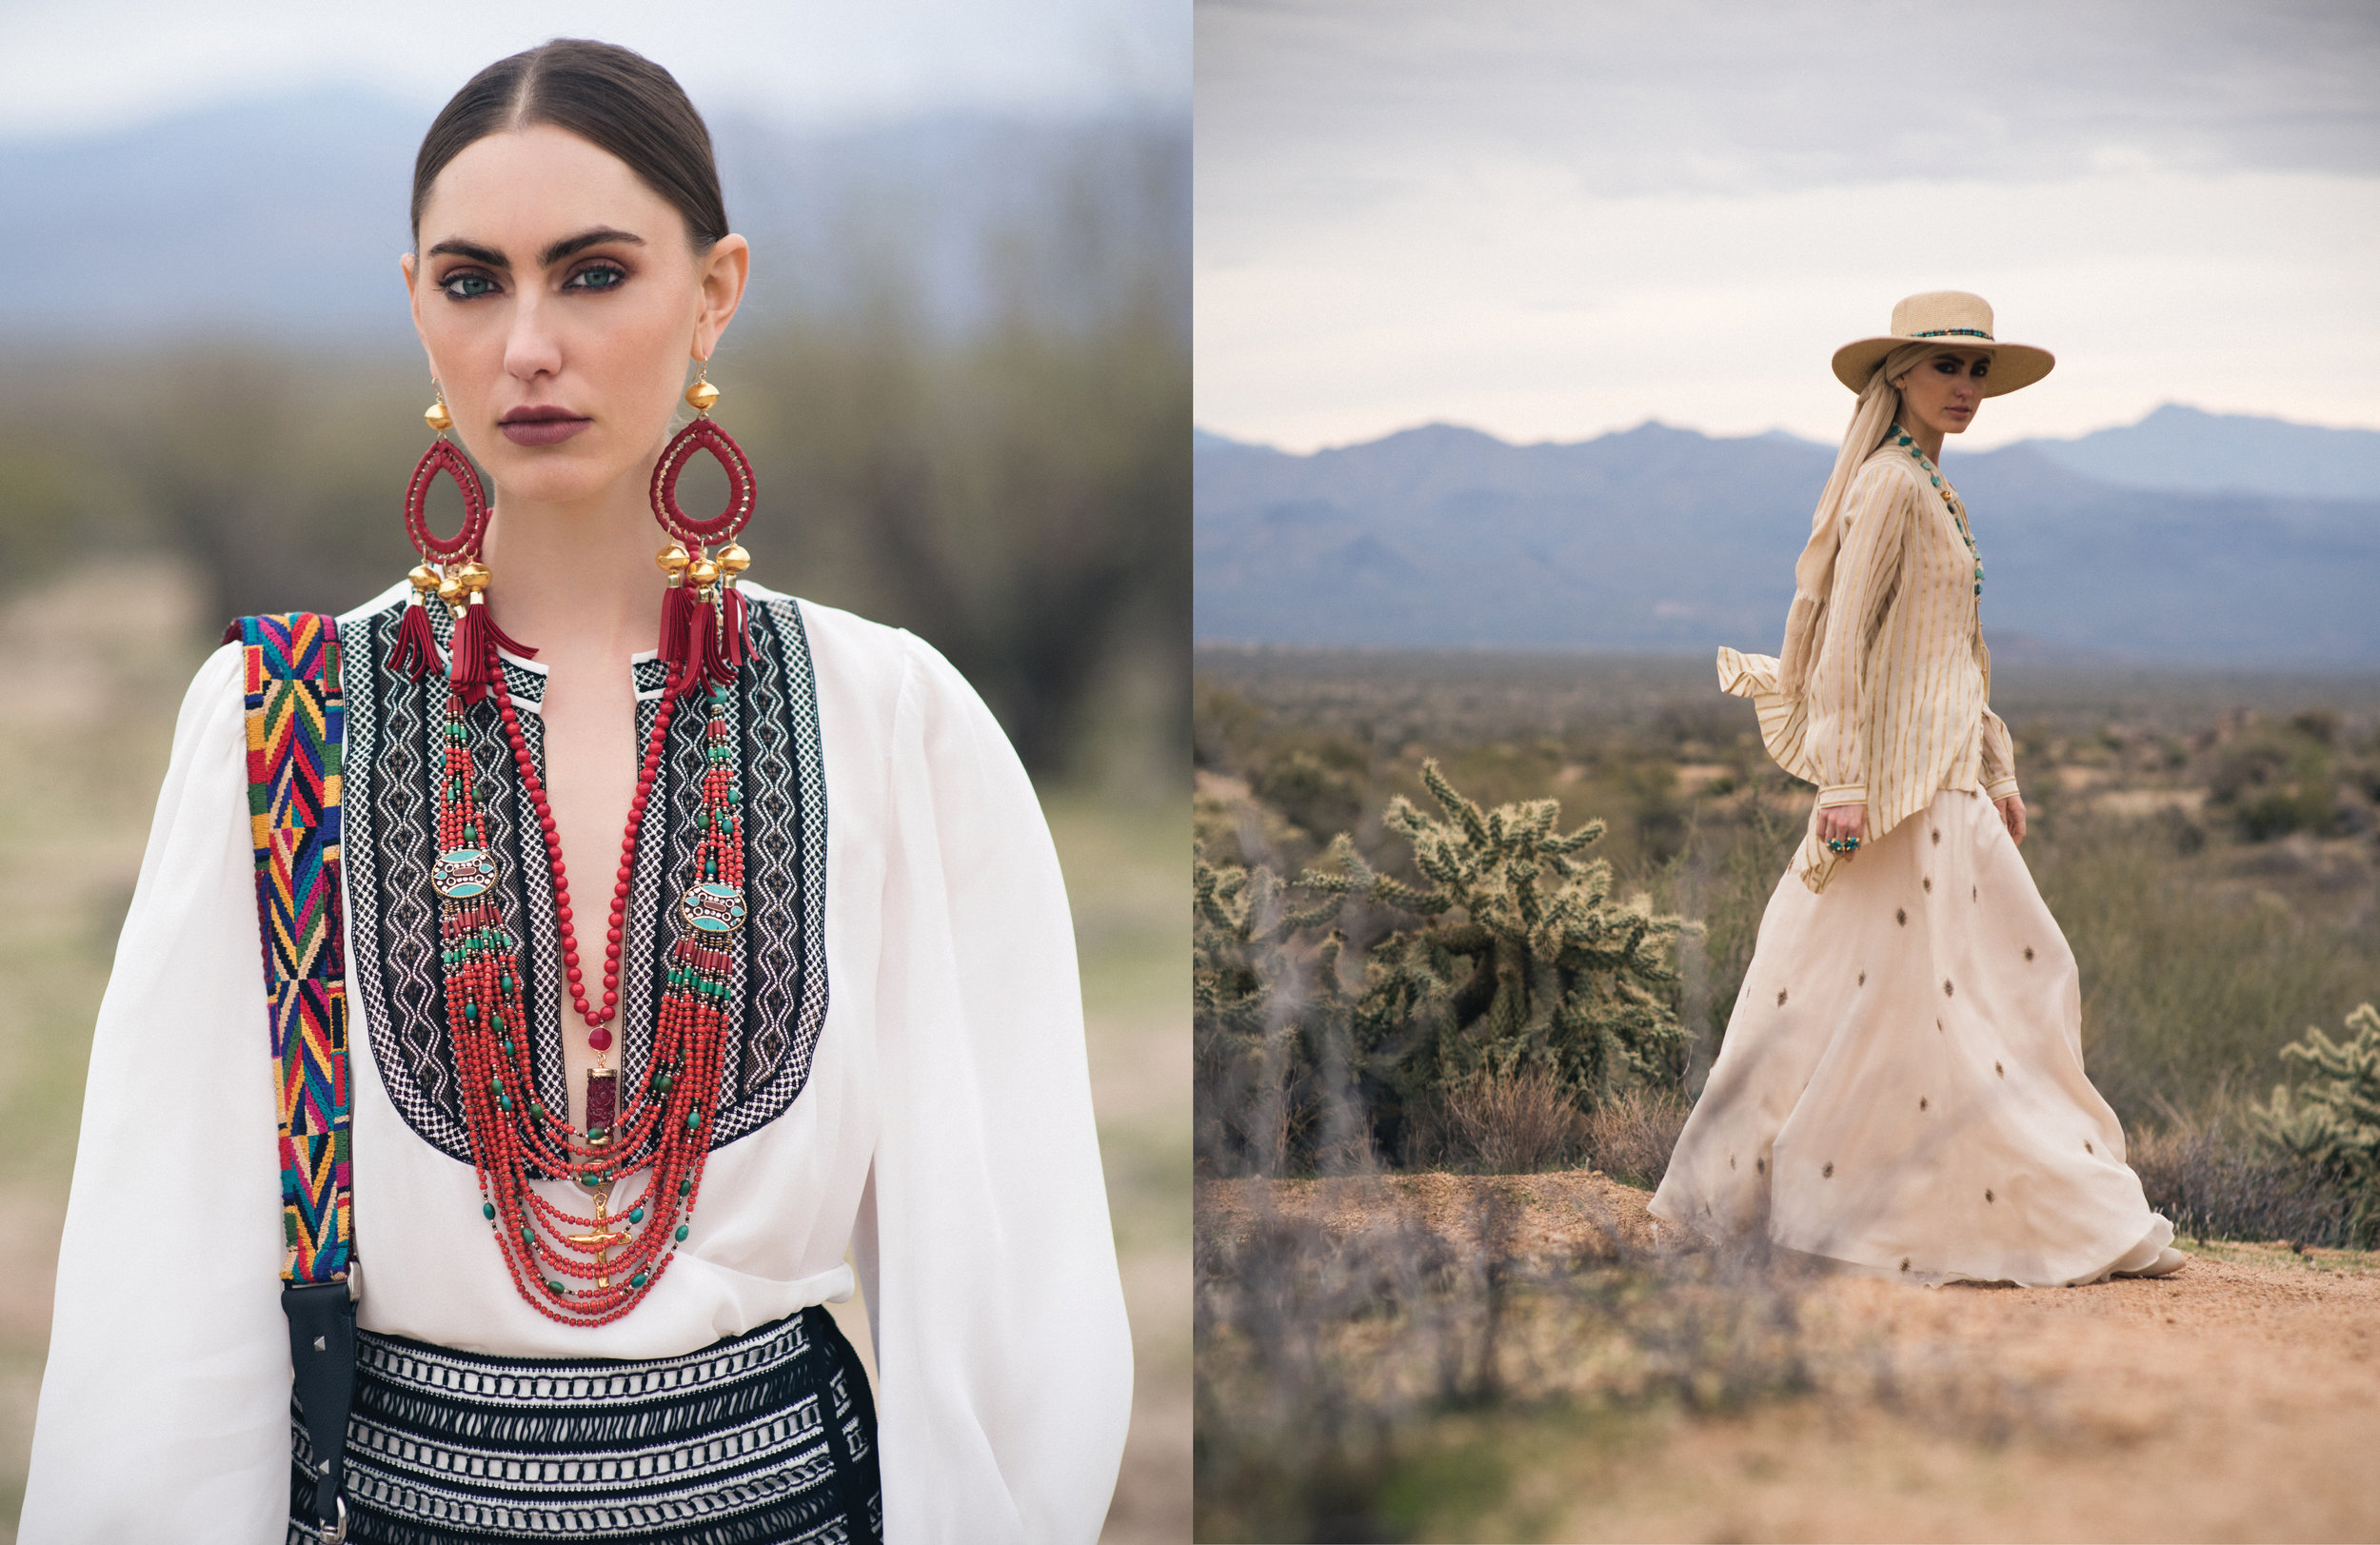 Photo: Christine Johnon; Wardrobe Stylist: Margaret Merritt; Hair/MUA: Diane Aiello; Shot on location in the Sonoran Desert Preserve, AZ